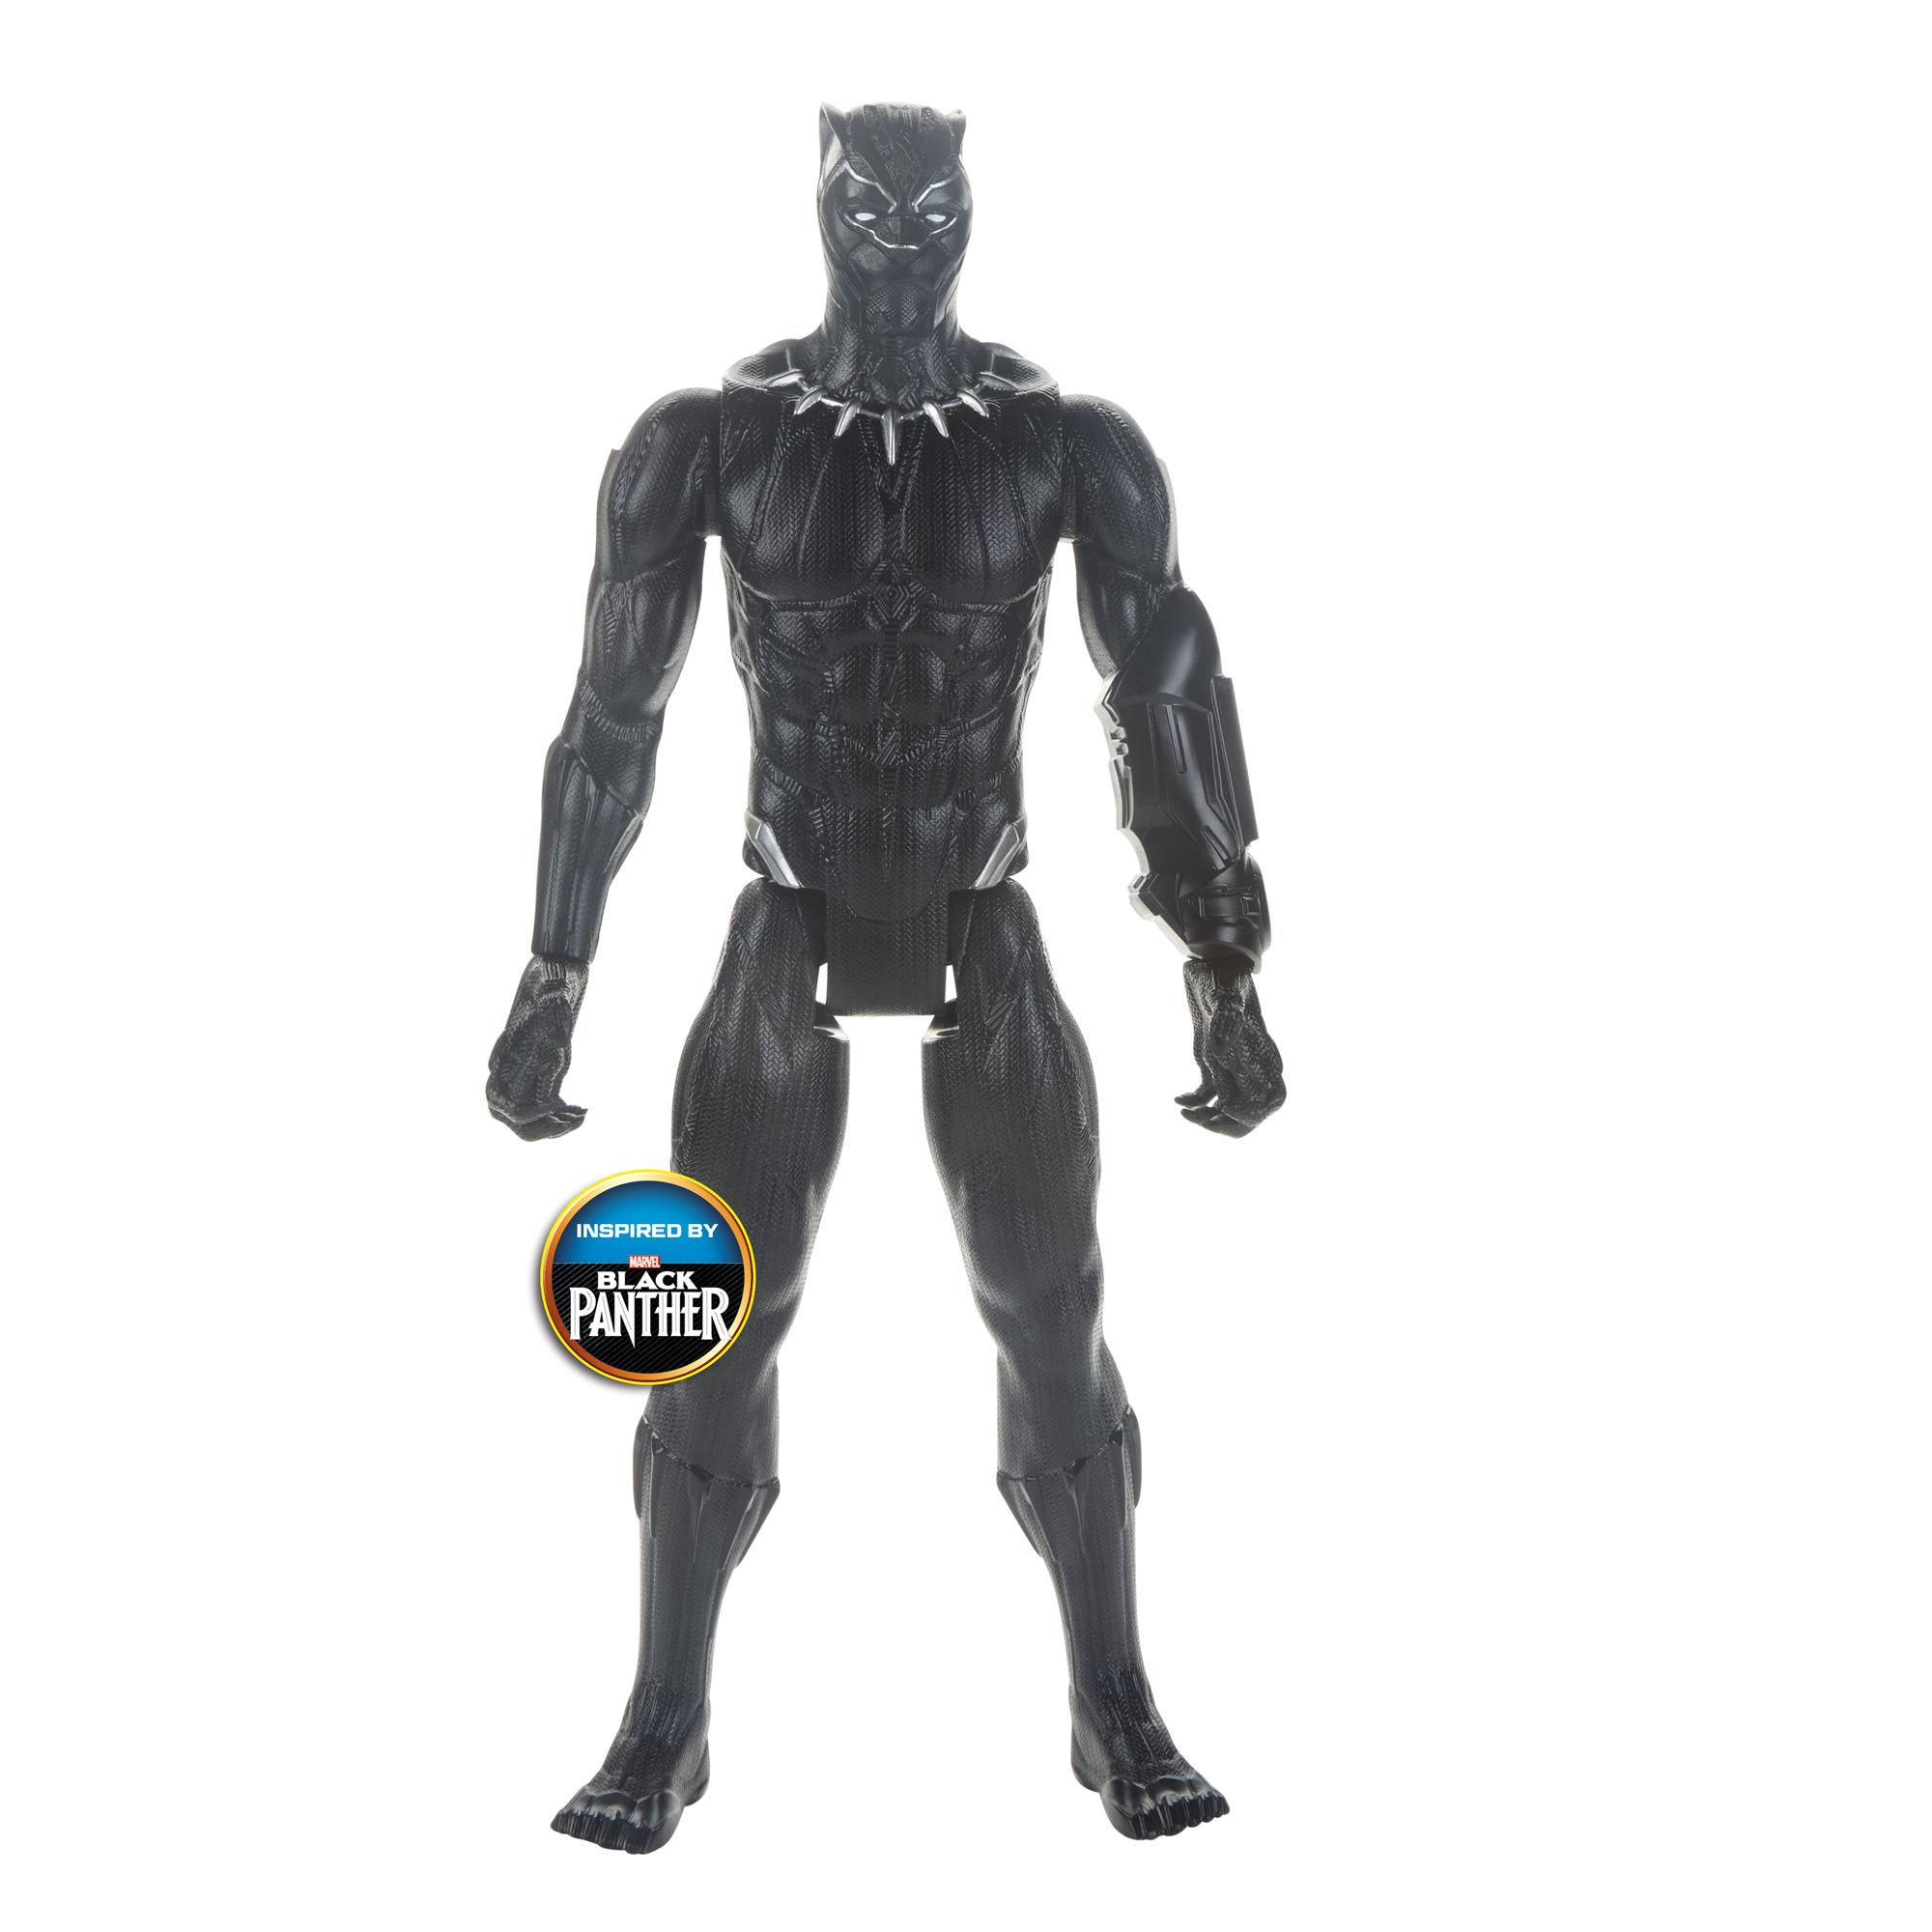 Avengers Endgame Titan Hero Black Panther